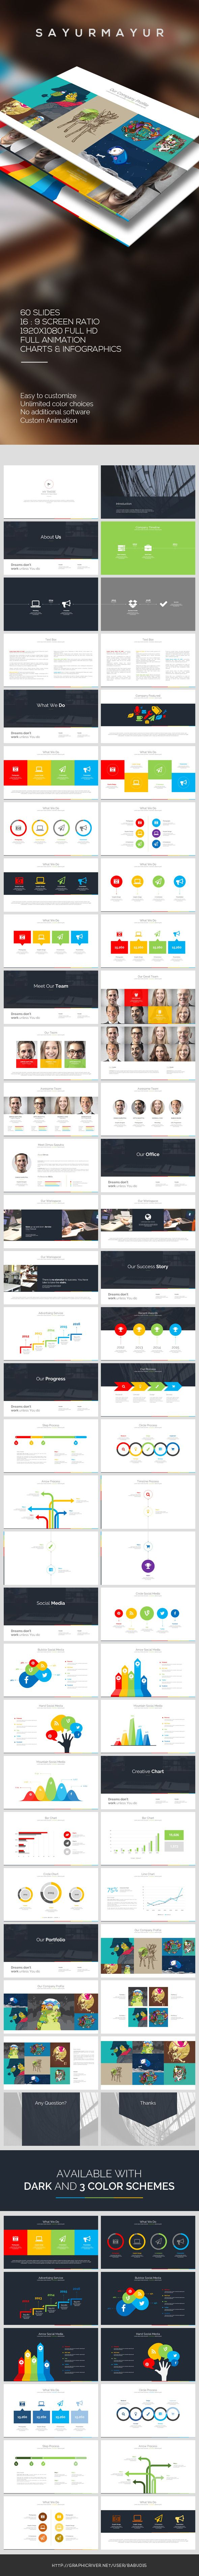 Sayurmayur PowerPoint Template #powerpoint #powerpointtemplate Download: http://graphicriver.net/item/sayurmayur-powerpoint-template/10041293?ref=ksioks